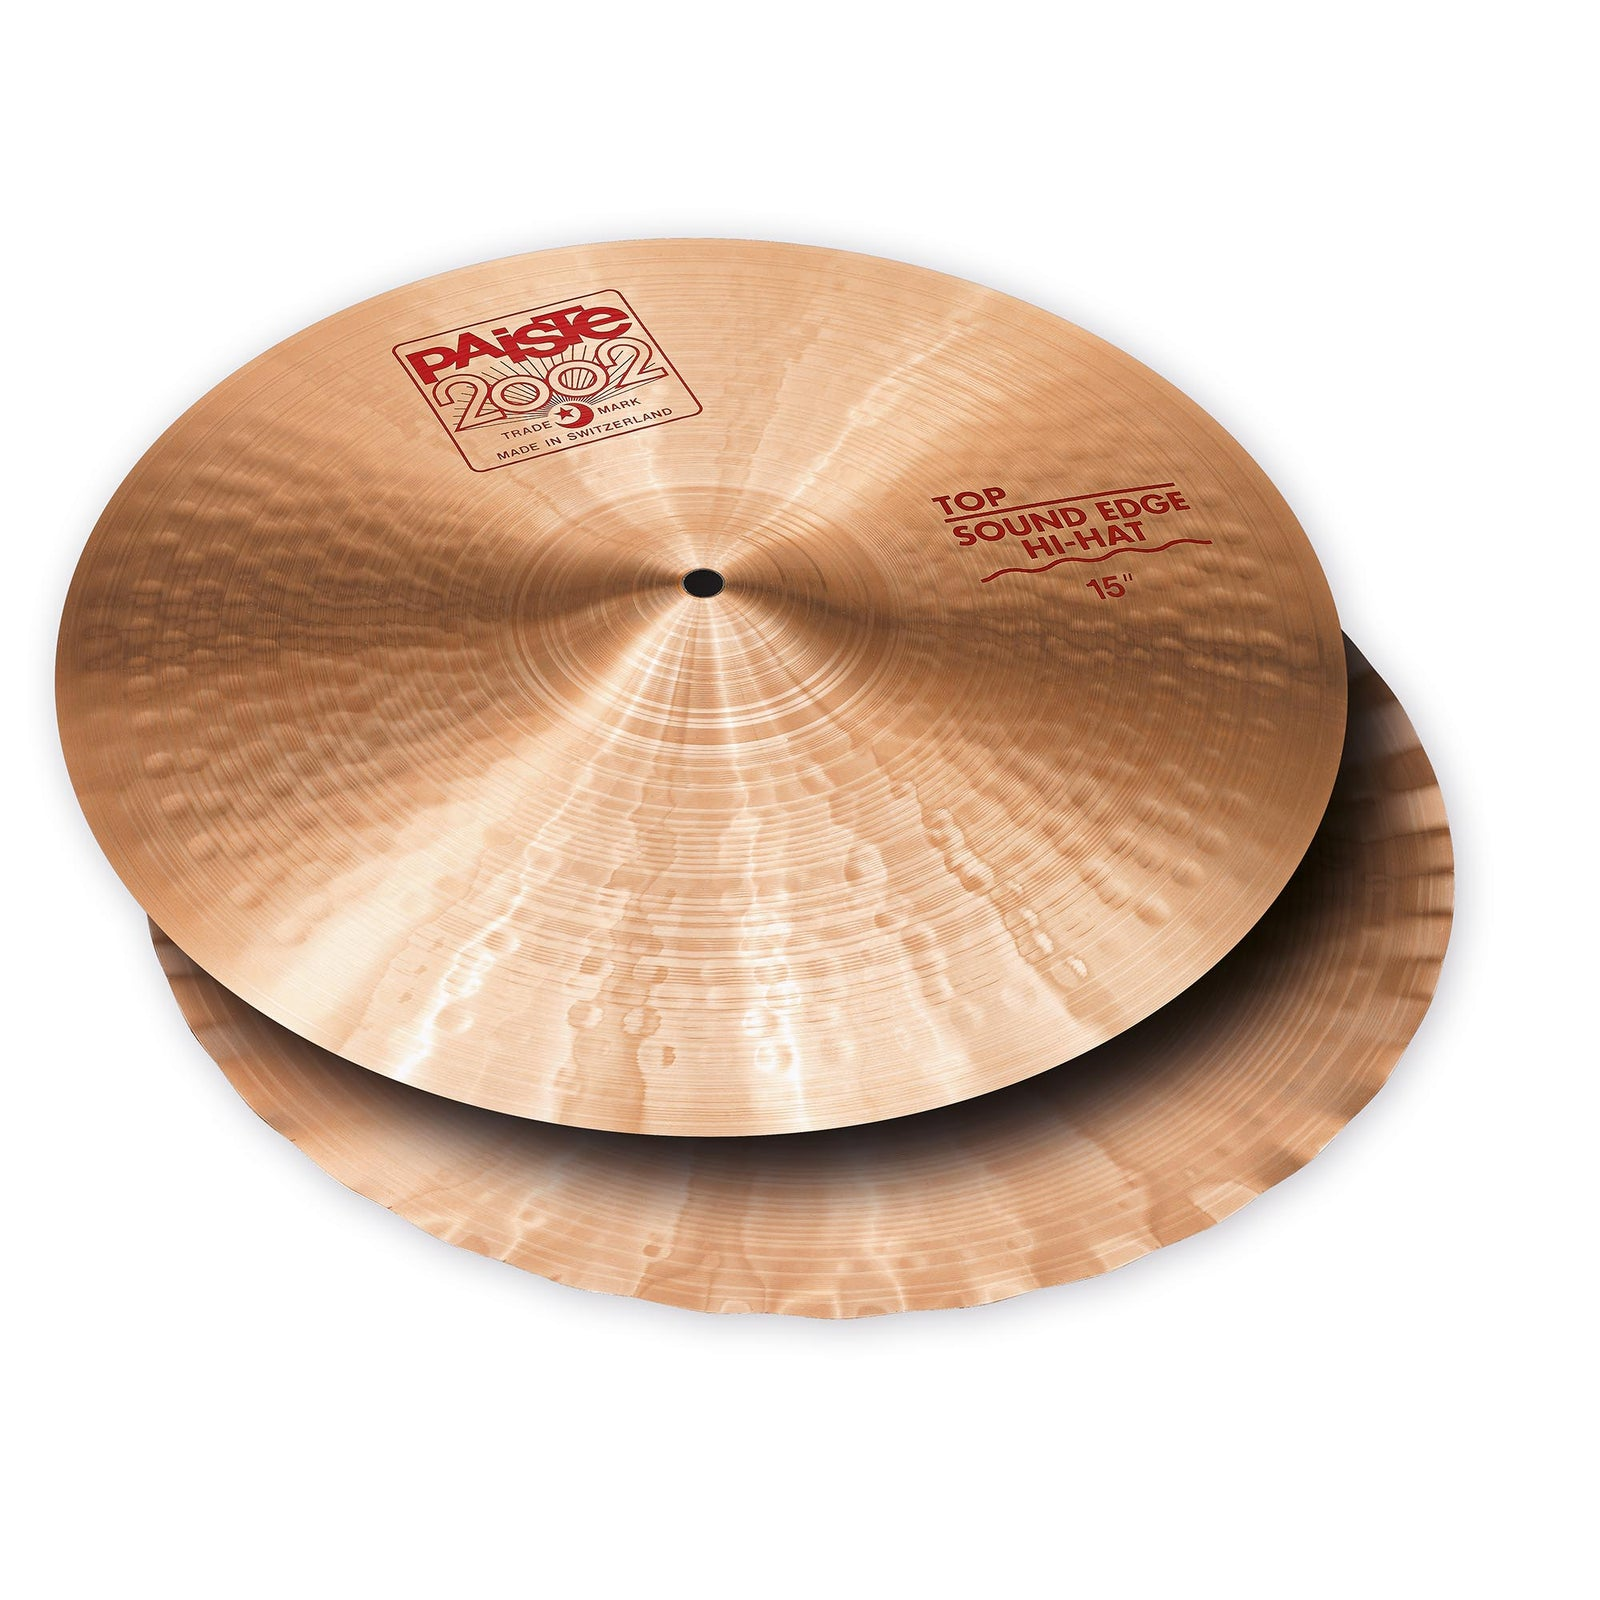 "Paiste 15"" 2002 Sound Edge Hi-Hat Pair"